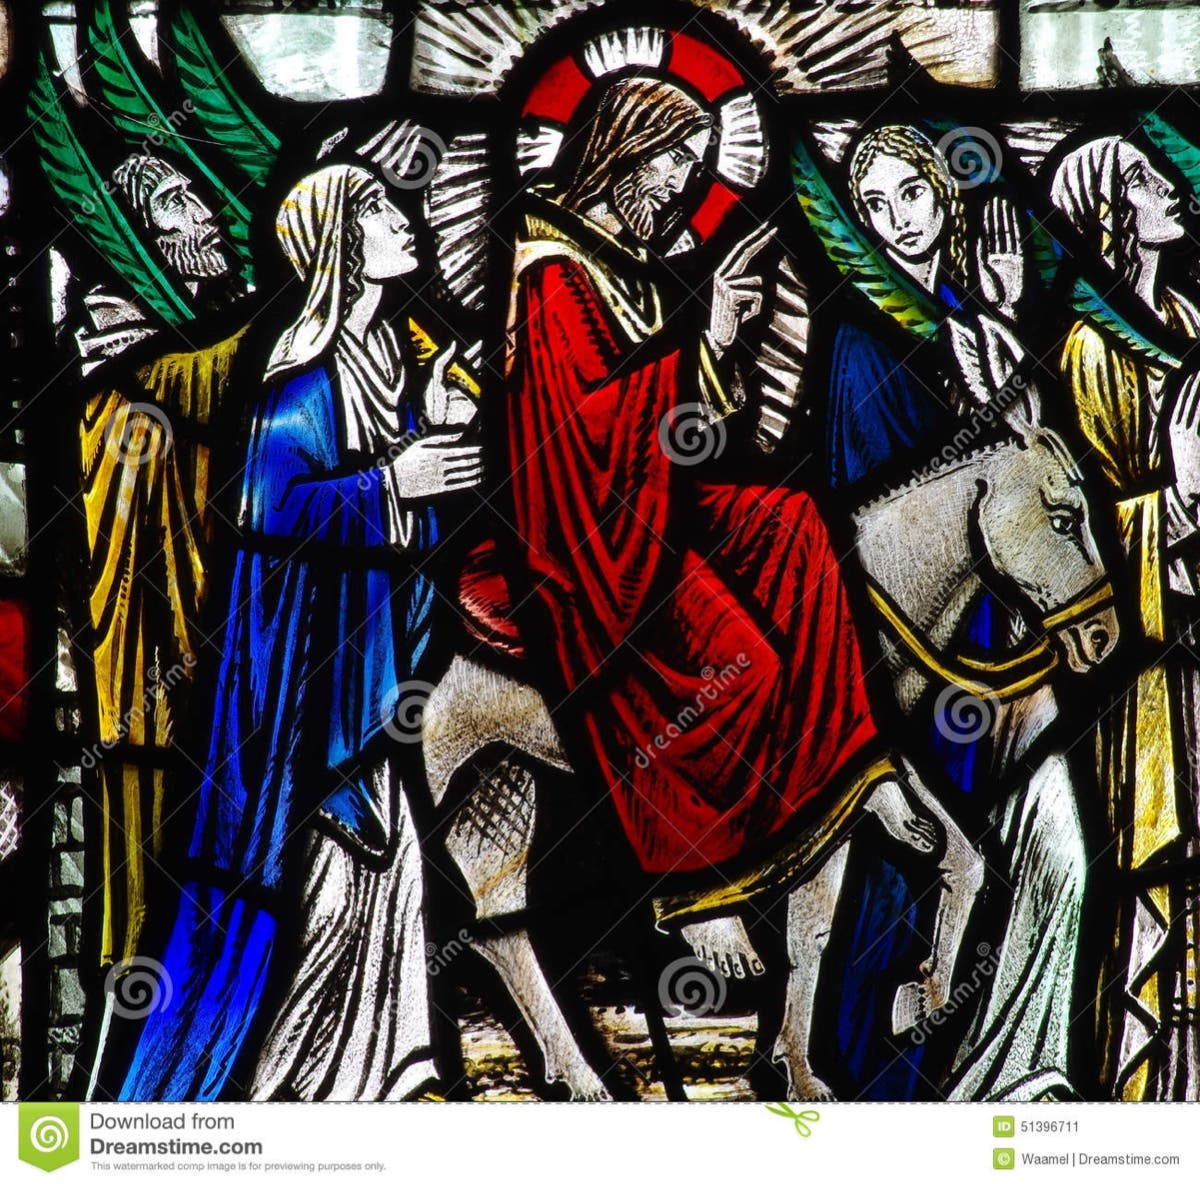 Apr 14 | The Sunday of the Passion & Liturgy of the Palms